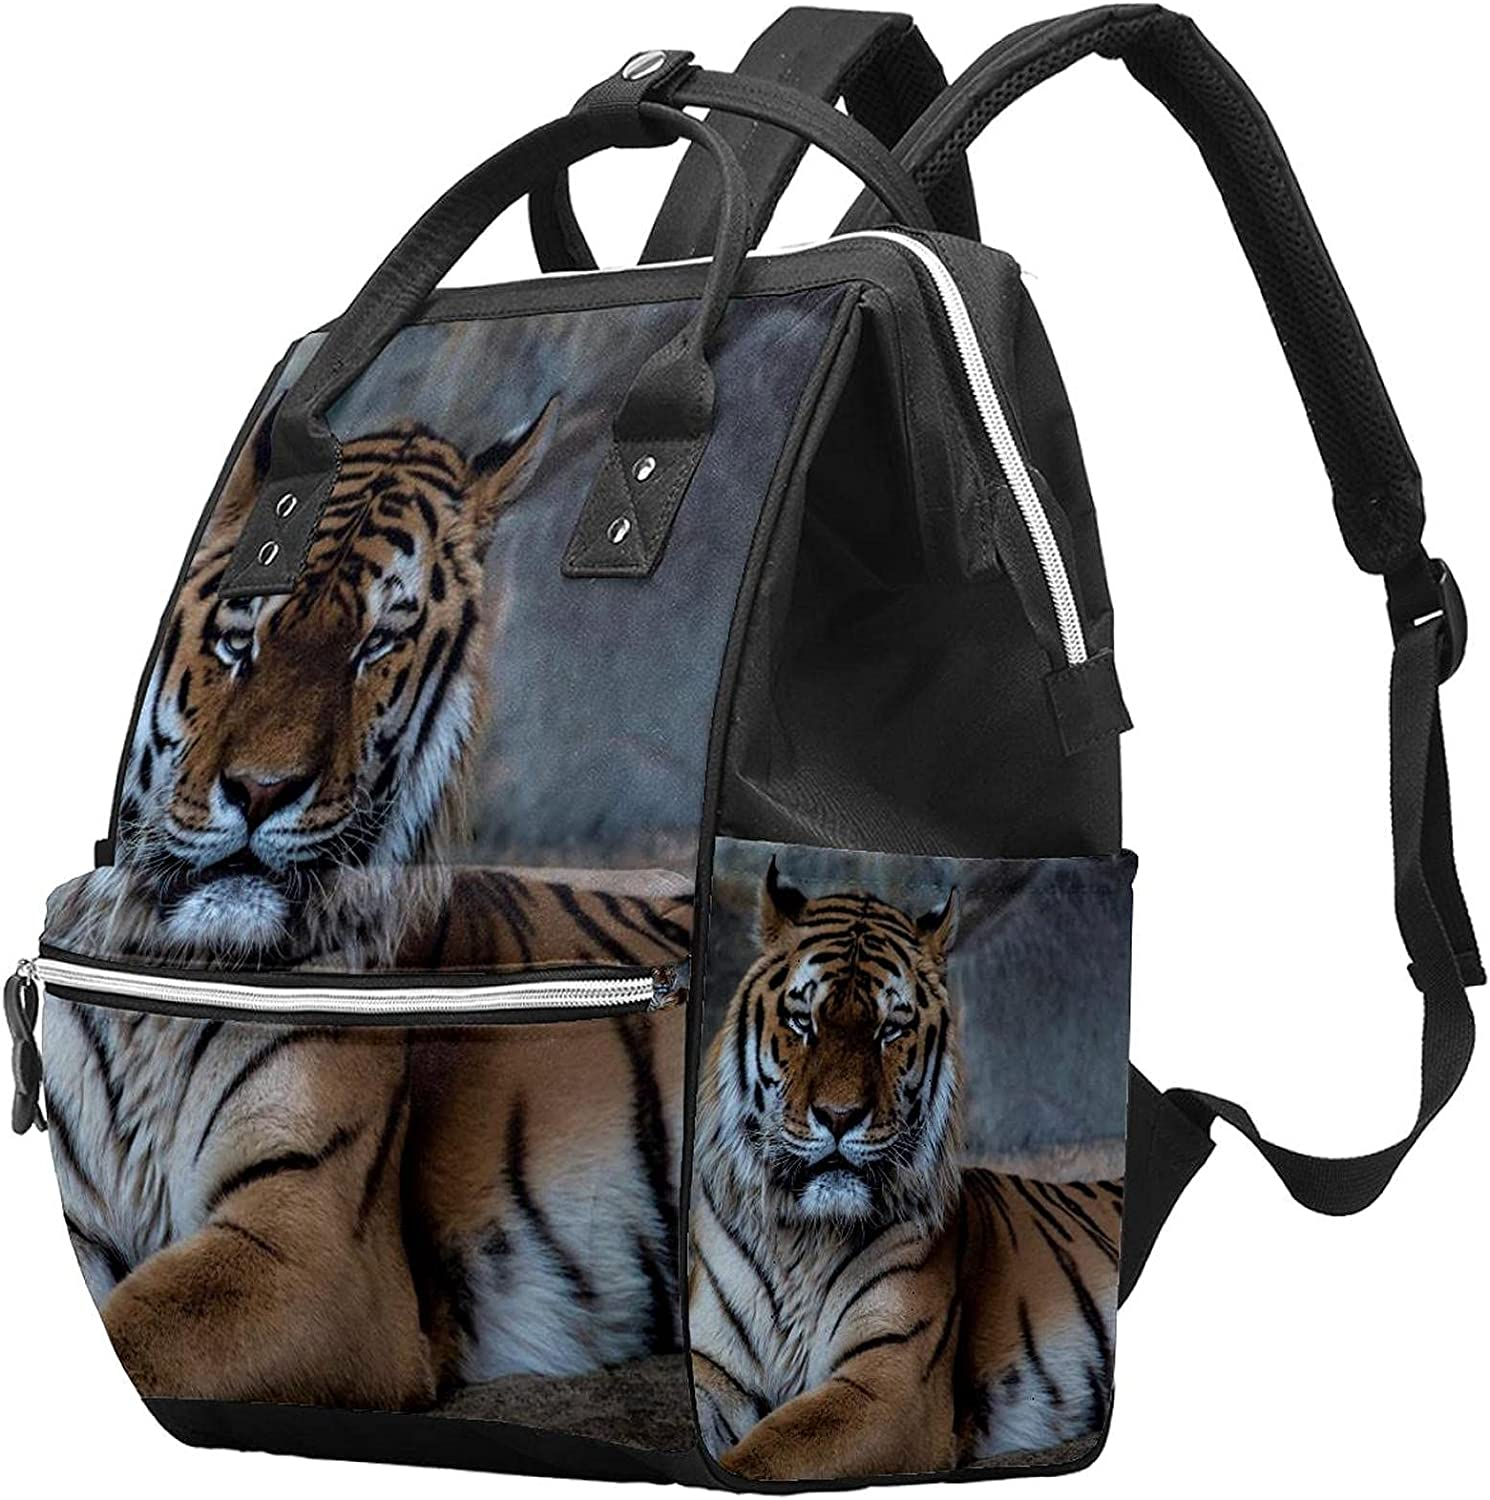 Chicago Mall 2021 spring and summer new Backpacks Diaper Bag Laptop Notebook Travel Hiking Rucksack Dayp